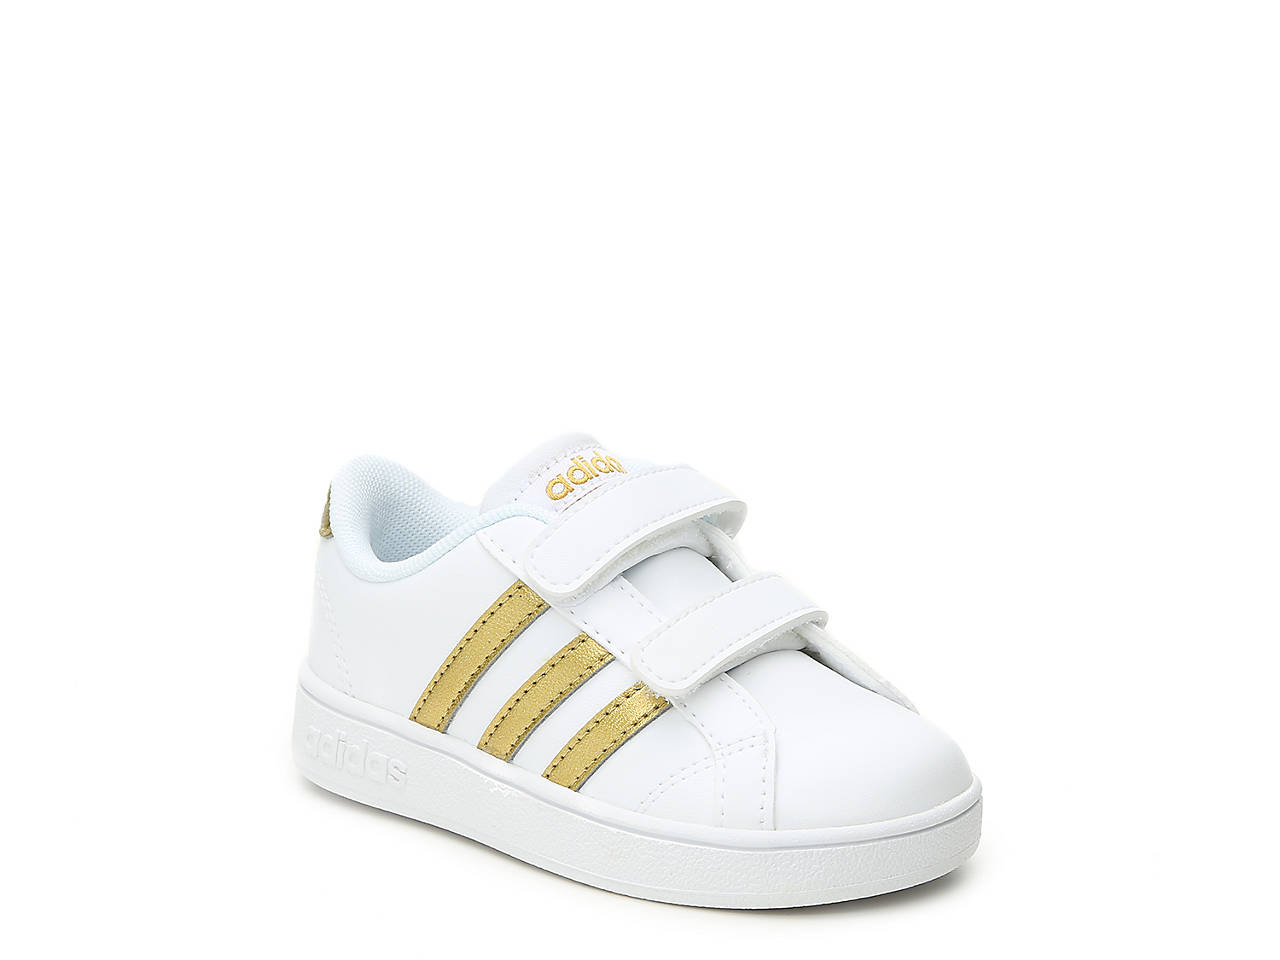 the best attitude ce622 999cb adidas Baseline Infant   Toddler Sneaker Kids Shoes   DSW